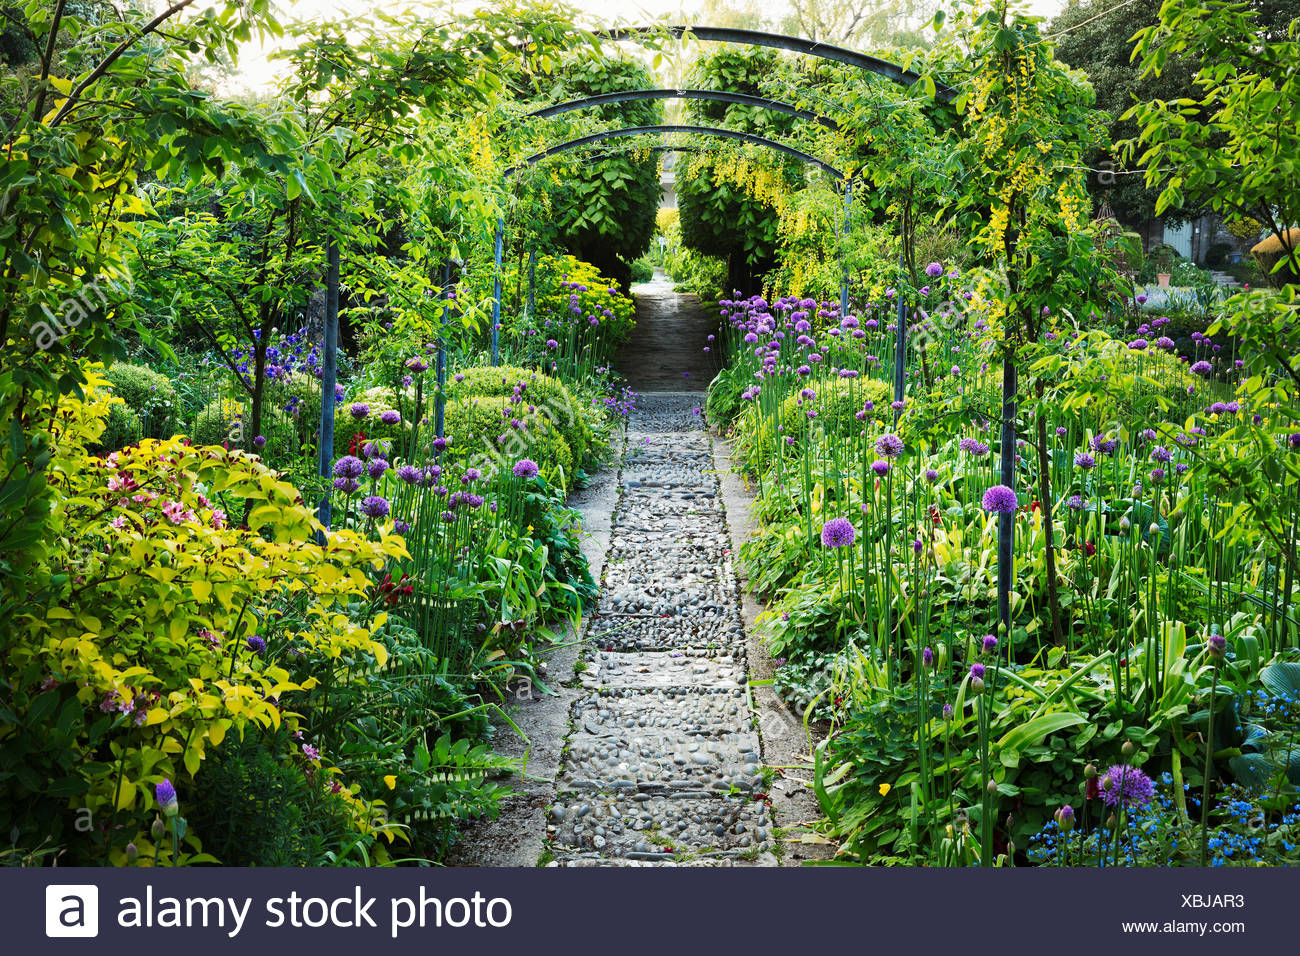 Beau Mature Plants And Shrubs In An English Garden, Pathway And Pergola.  Cotswold Stone, Purple Aliums Flowering. Glouchestershire Hotel Gardens